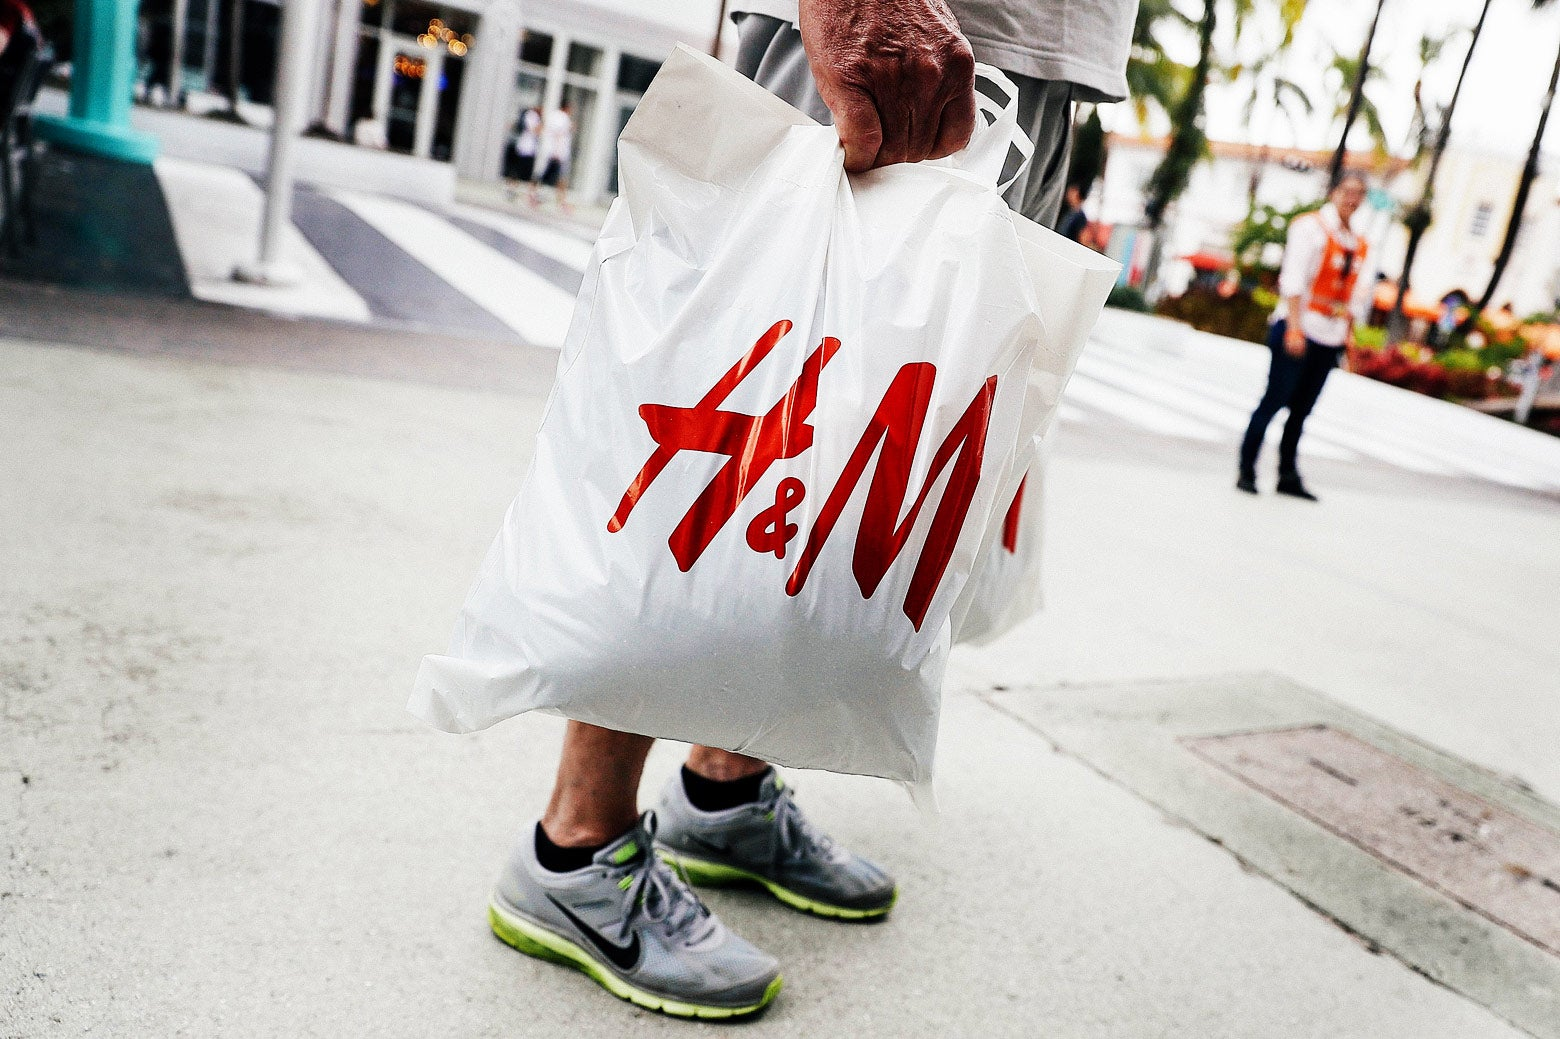 A plastic bag with the H&M logo on it, held by a man in shorts and sneakers outside a store in Miami.